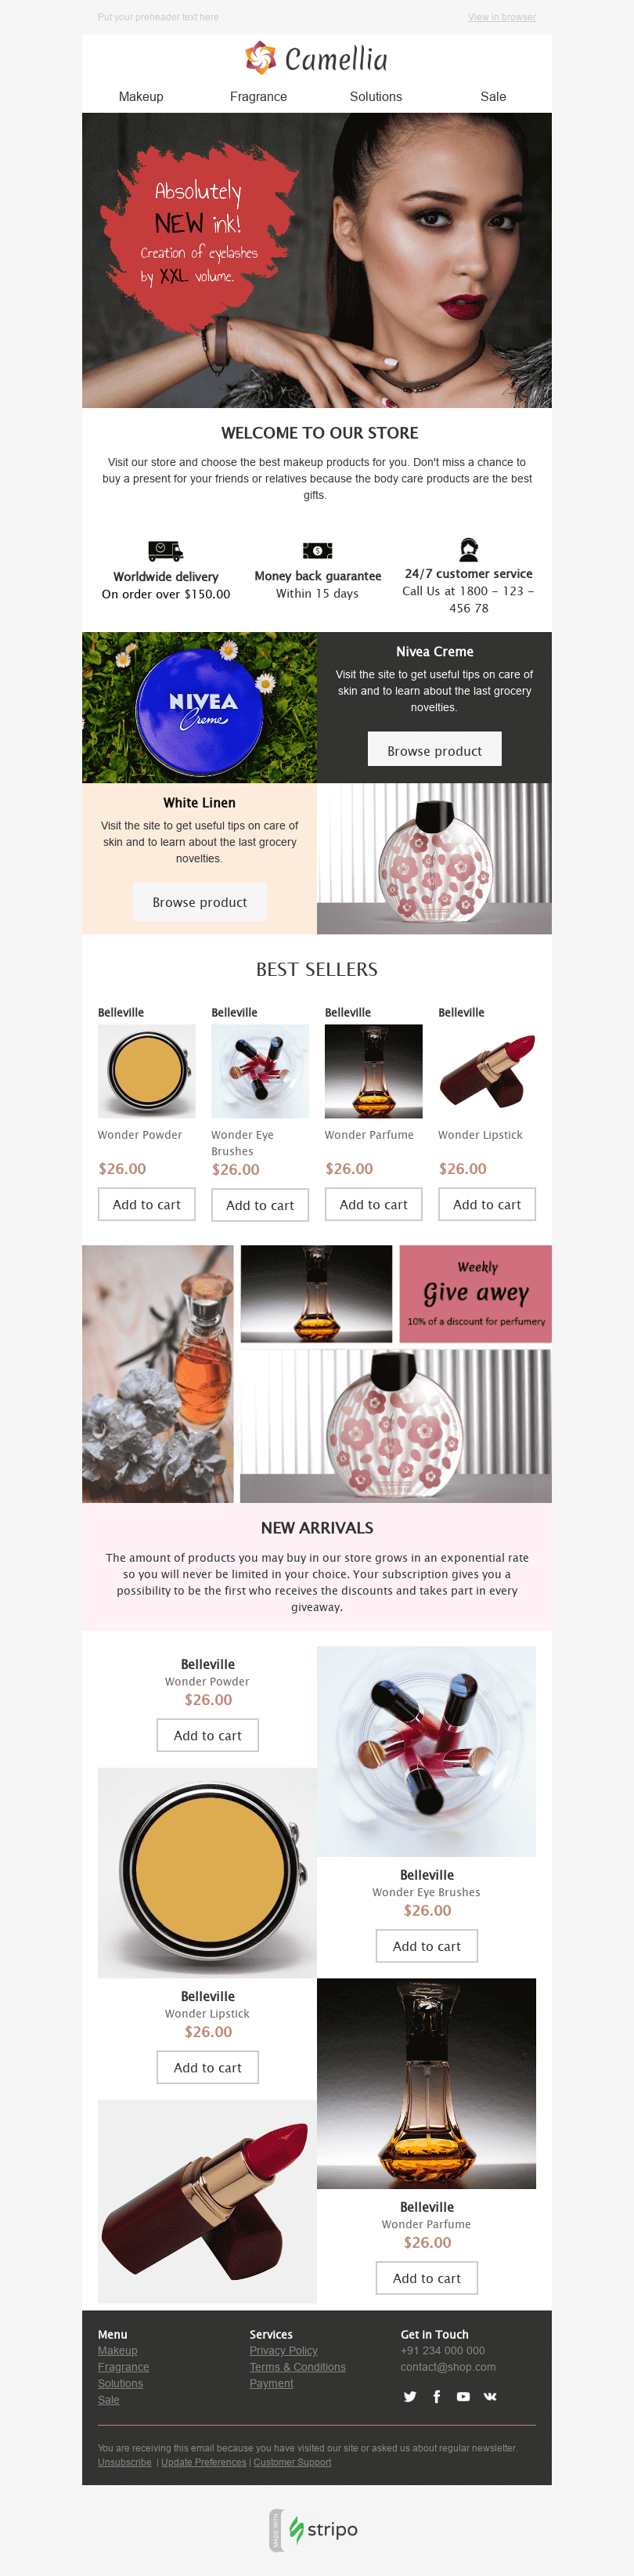 Stripo Cosmetics Promo newsletter Womans Beauty email web